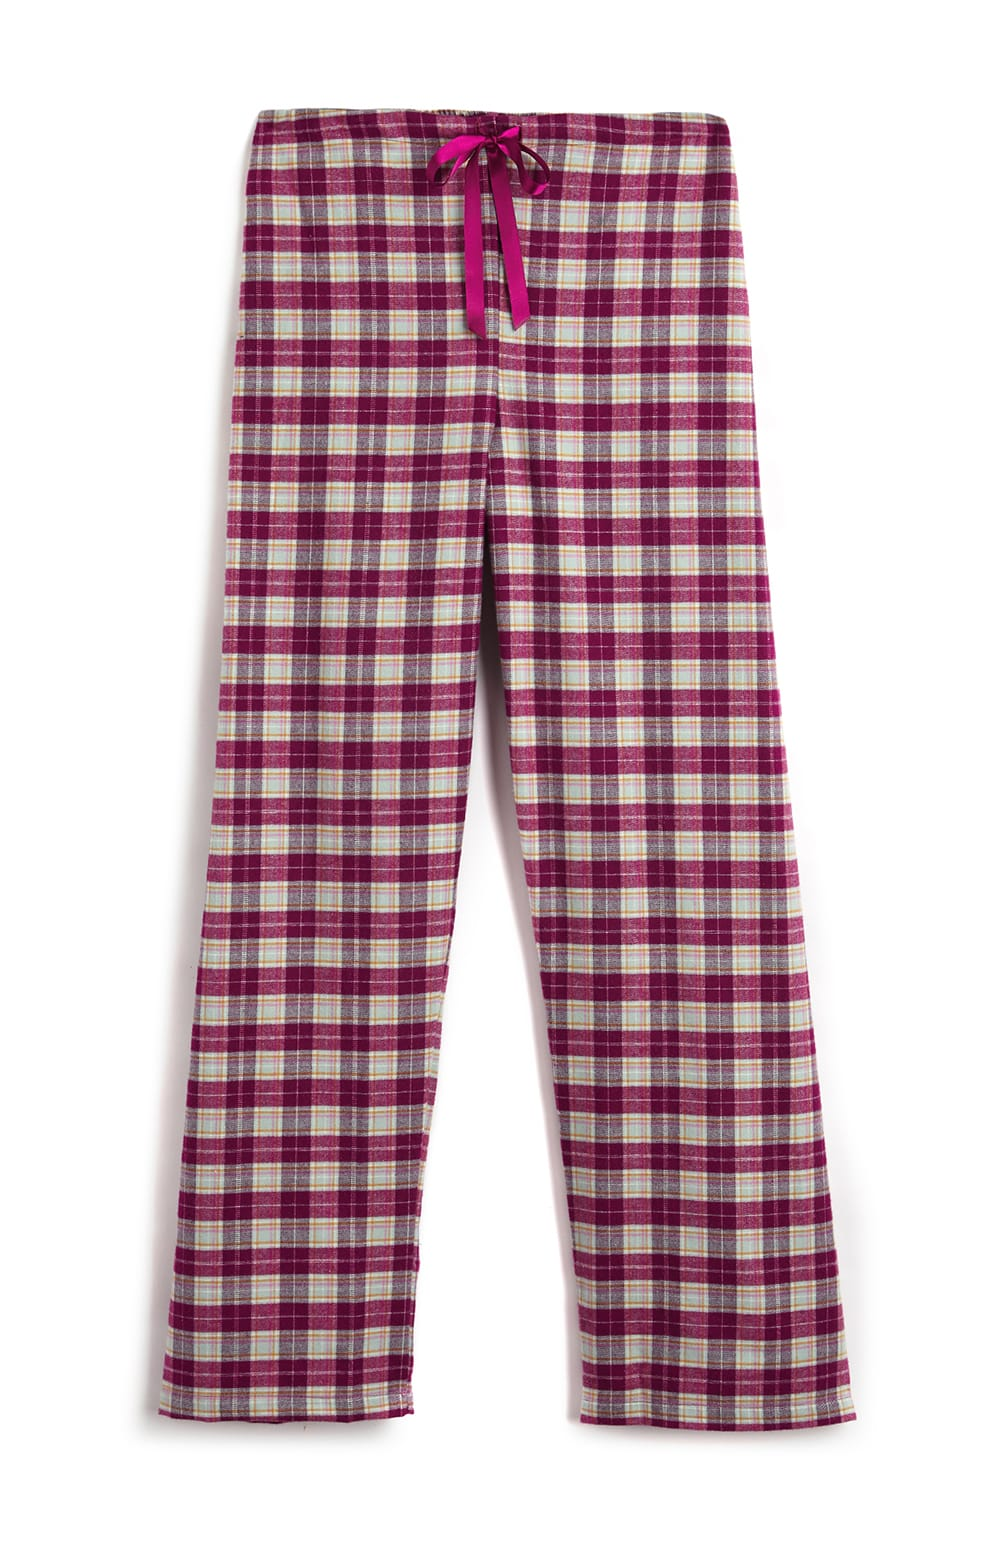 Brushed Cotton Melbury Pyjama Trousers | Bonsoir of London